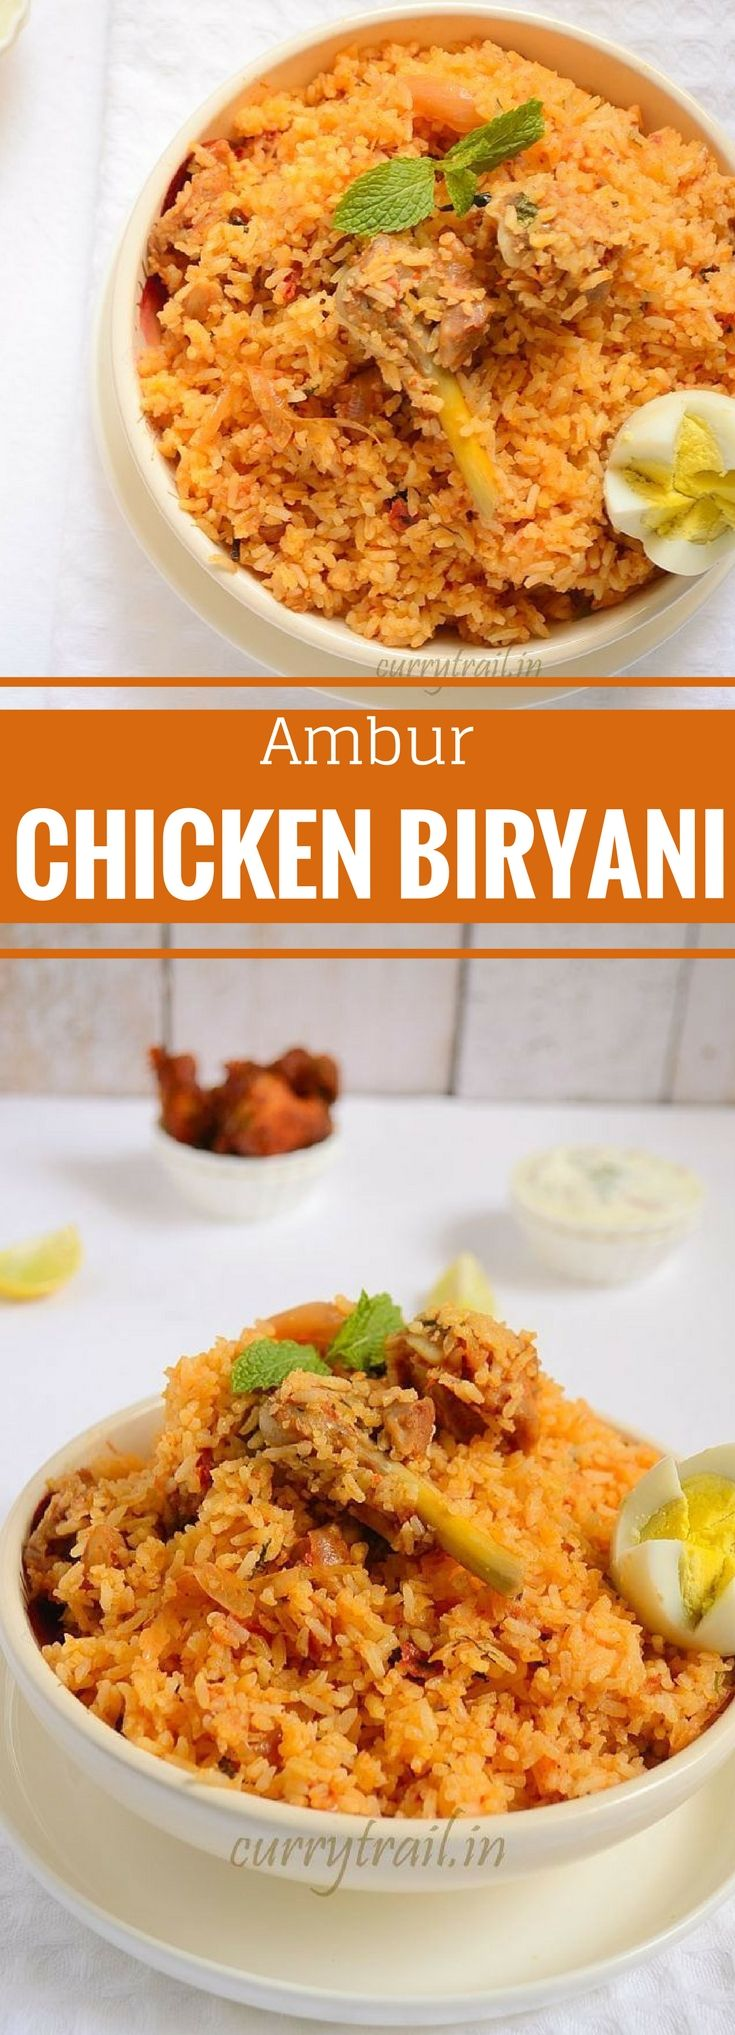 Learn how to make authentic Ambur chicken biryani which is one of the best biryani recipe from Tamilnadu. It's flavor packed and very delicious. Perfect for Sunday brunch with family and friends. #amburbiryani #amburchickenbiryani #southindianchickenbiryanirecipe #sundayspecial #nonvegetarianricerecipe #indianrecipes #southindianricerecipes #familydinnerrecipes @currytrail